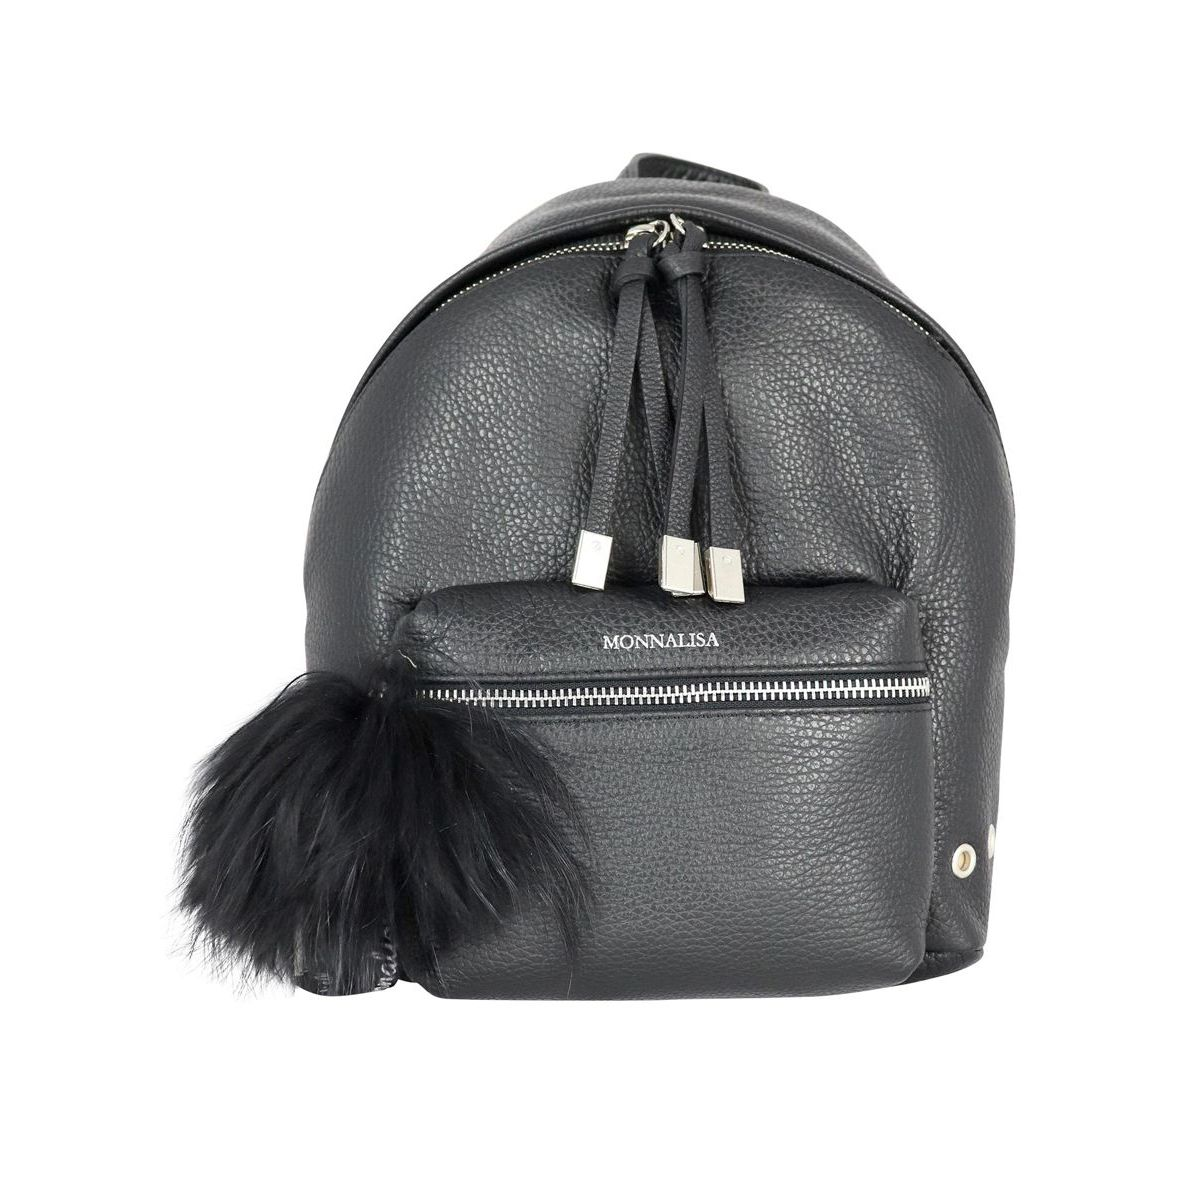 Leather backpack with fur pom poms Black Monnalisa